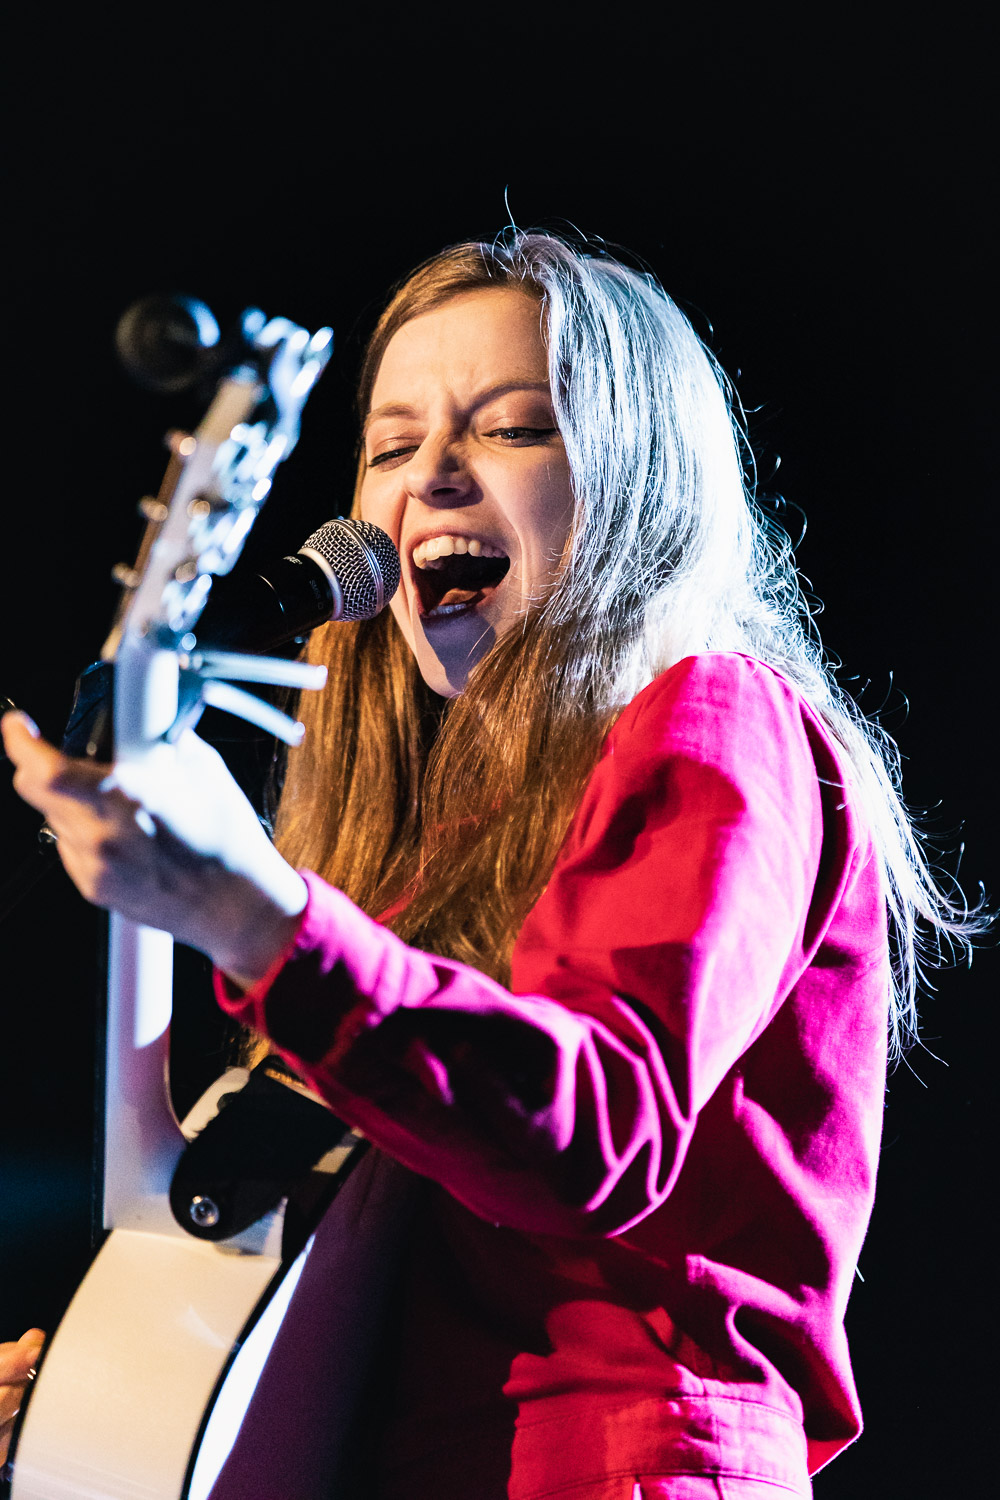 Jade Bird on stage at the Union Event Center. Photo: @Lmsorenson